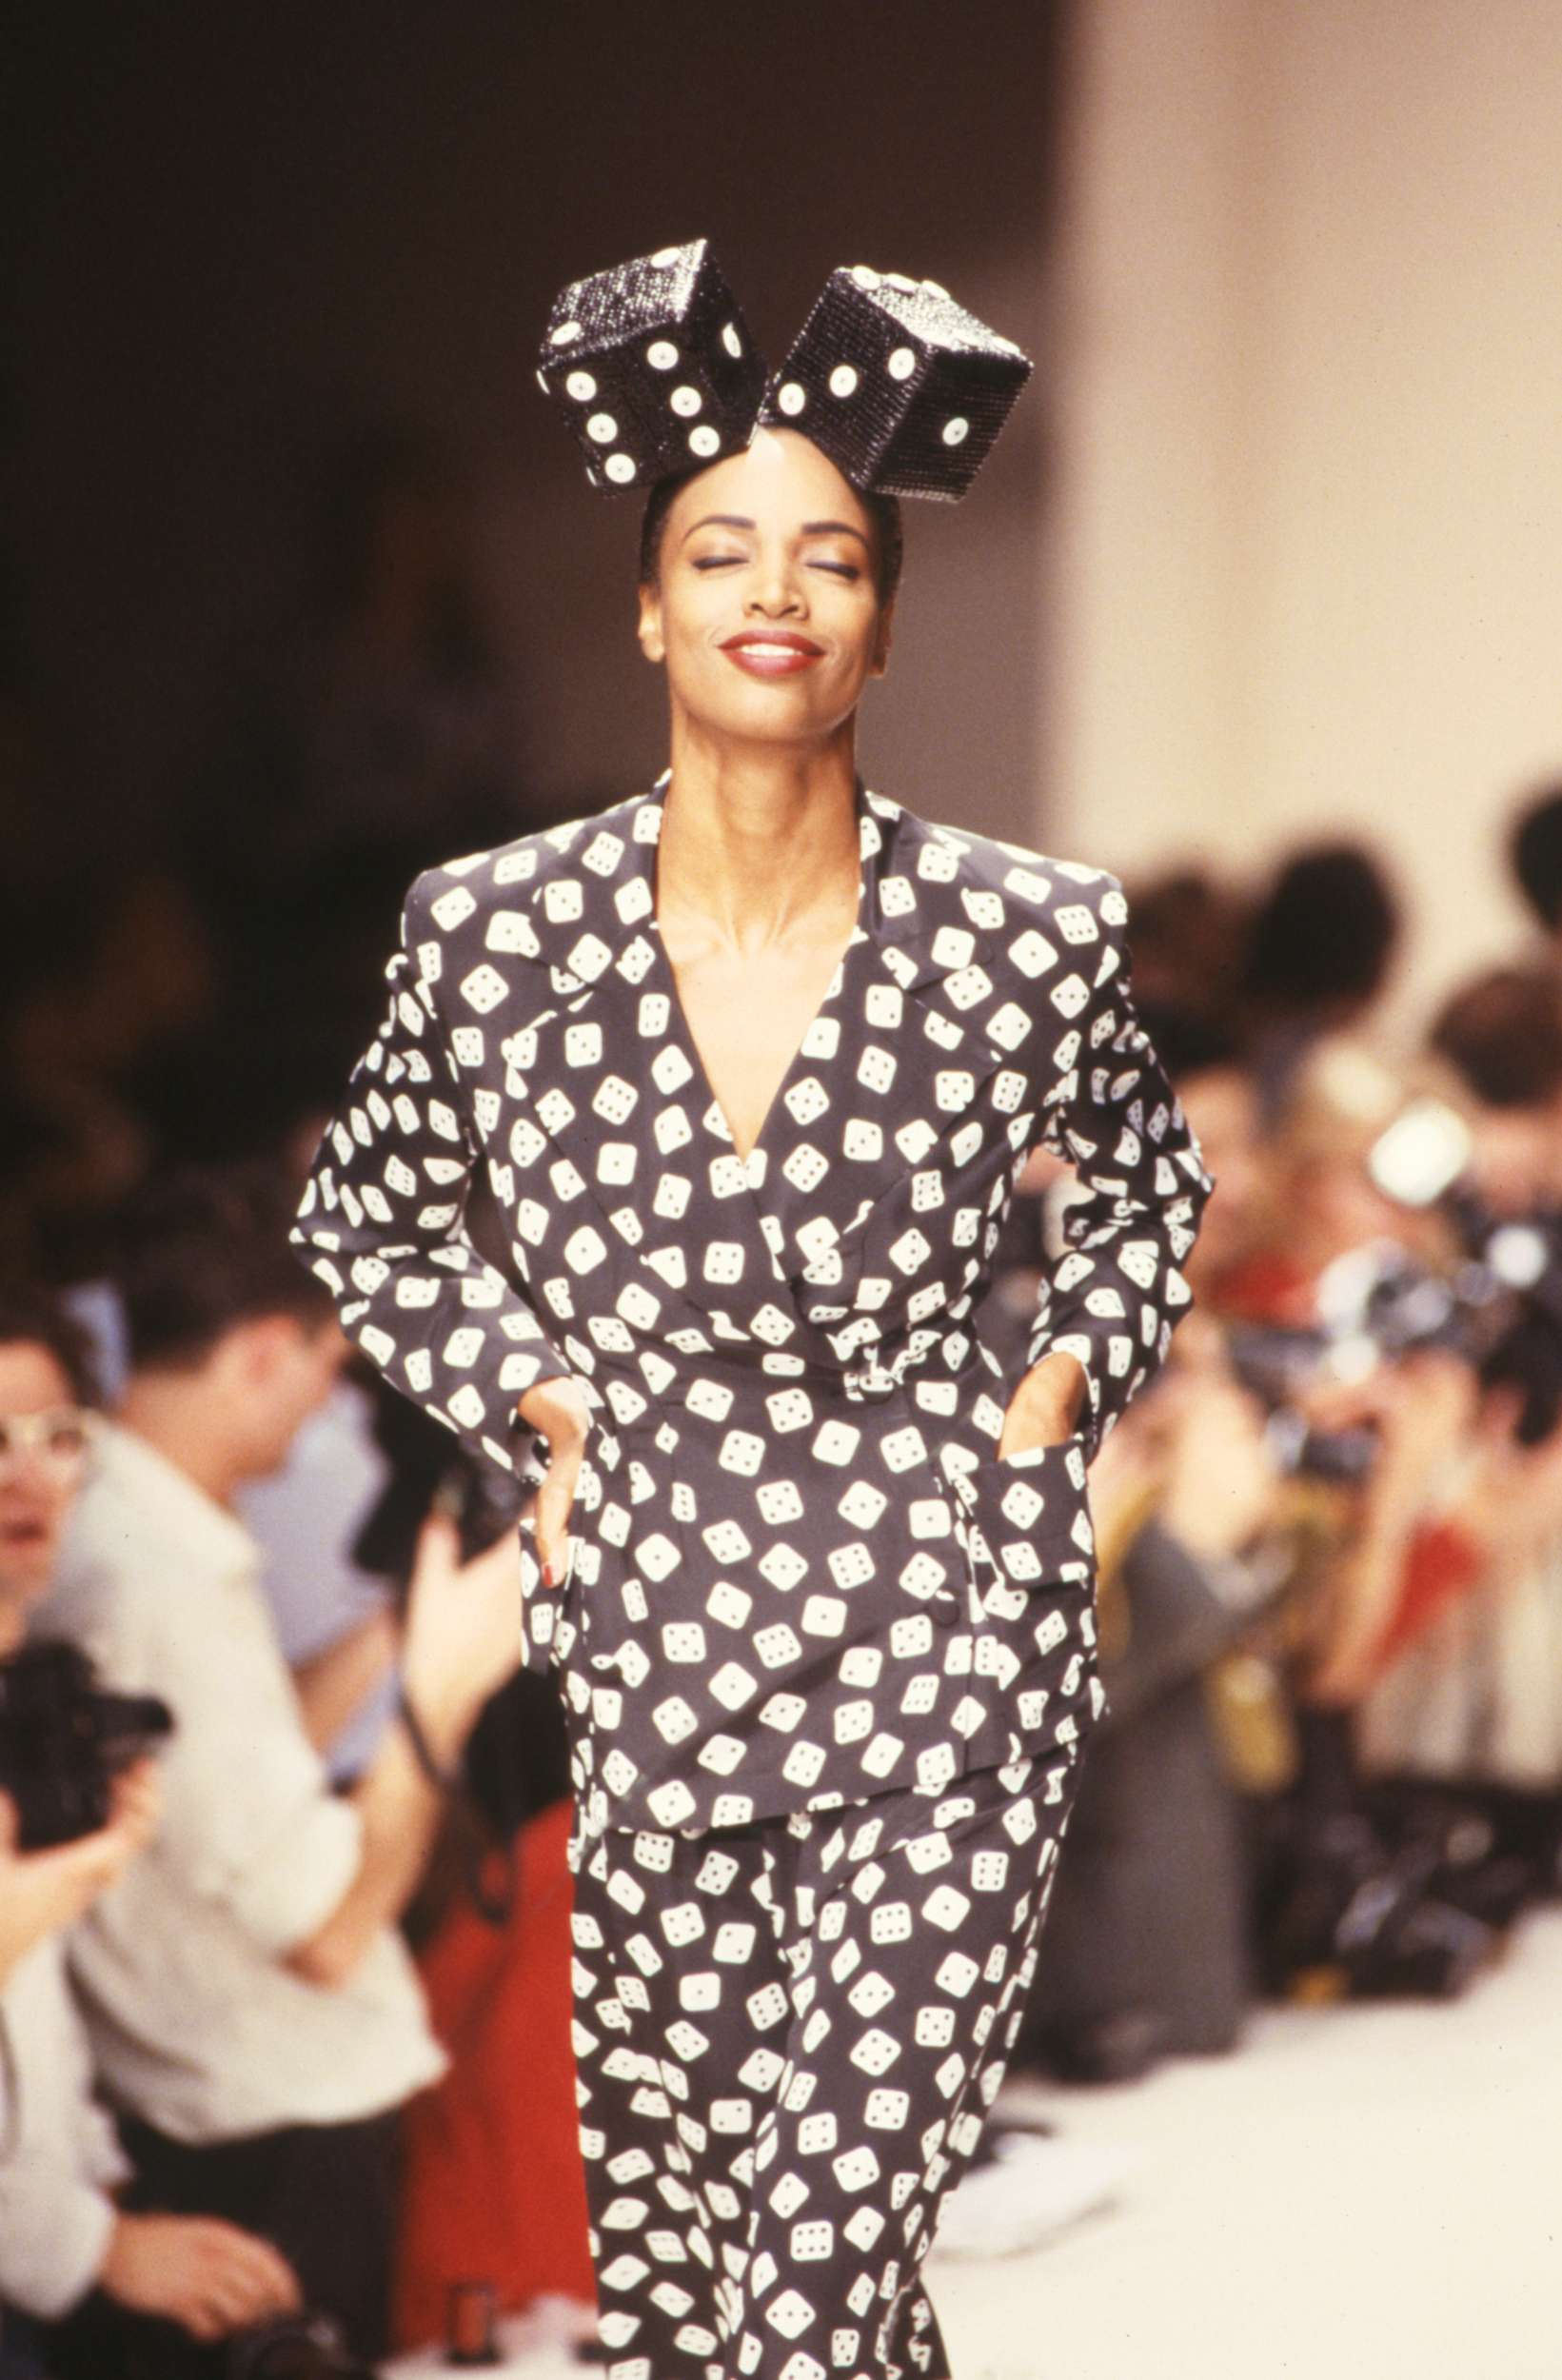 PARIS, FRANCE - OCTOBER: A model walks the runway at the Patrick Kelly Ready to Wear Spring/Summer 1989 fashion show during the Paris Fashion Week in October, 1988 in Paris, France. (Photo by Victor VIRGILE/Gamma-Rapho via Getty Images) Image courtesy of the Fine Arts Museums of San Francisco